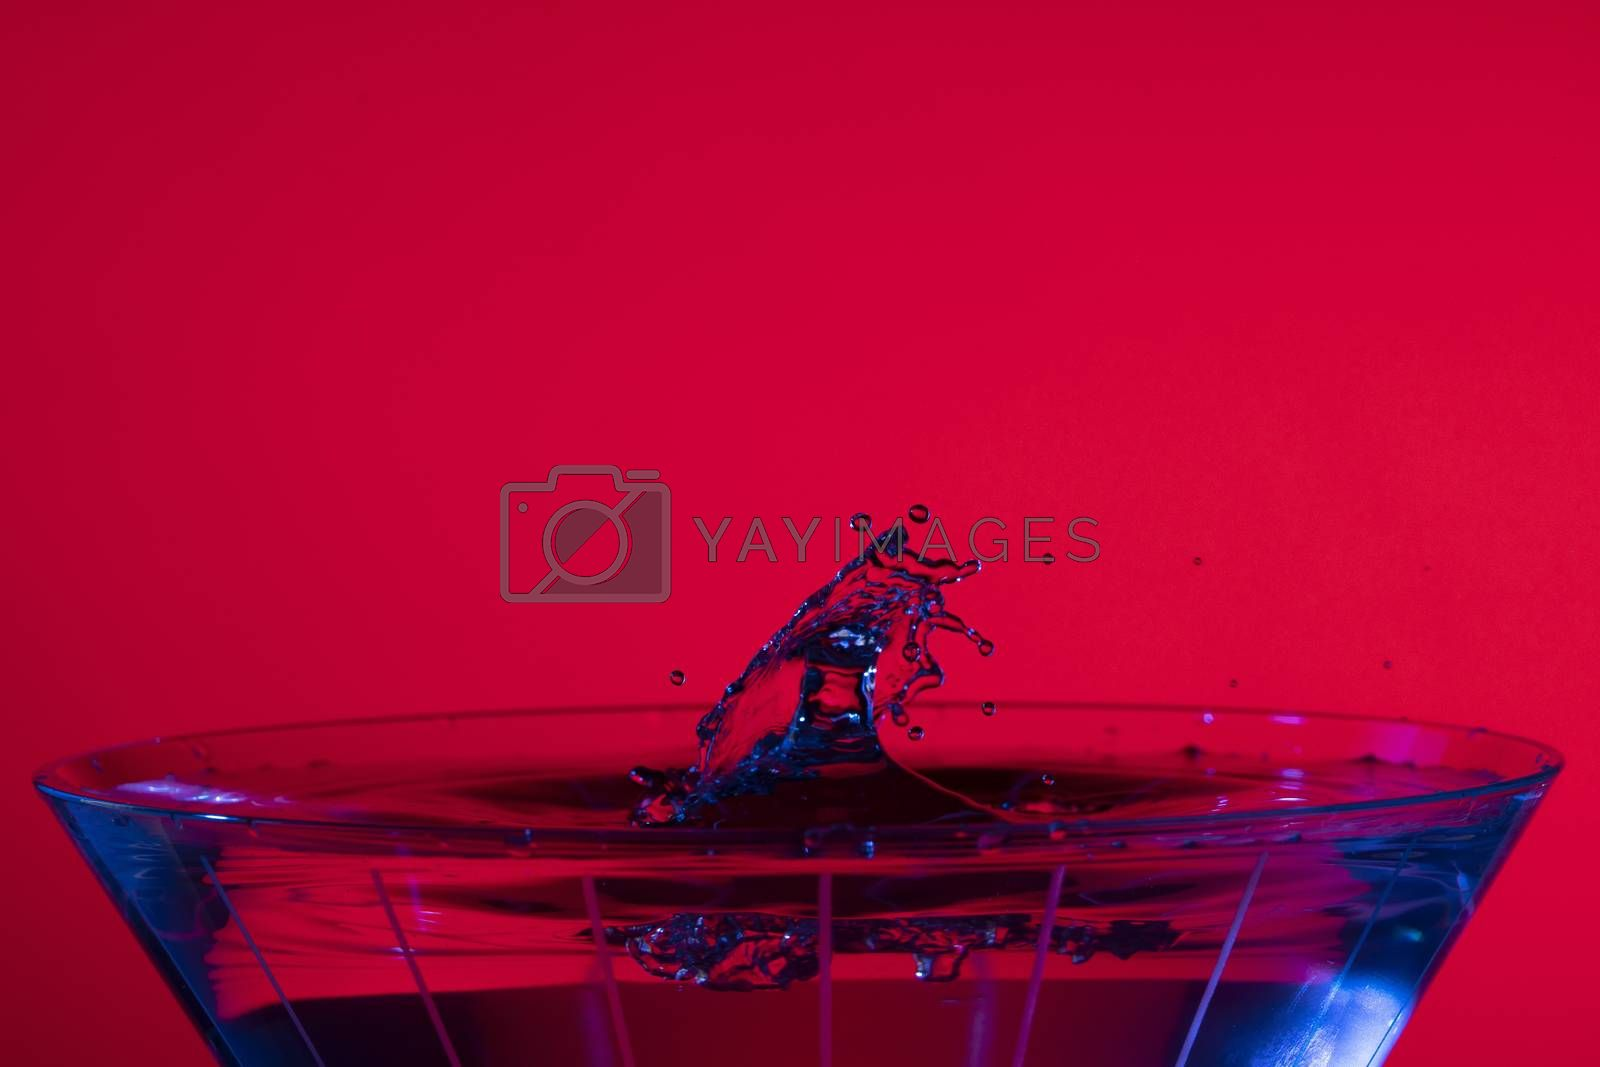 Blue Martini Splashes on Red by Charlie Floyd